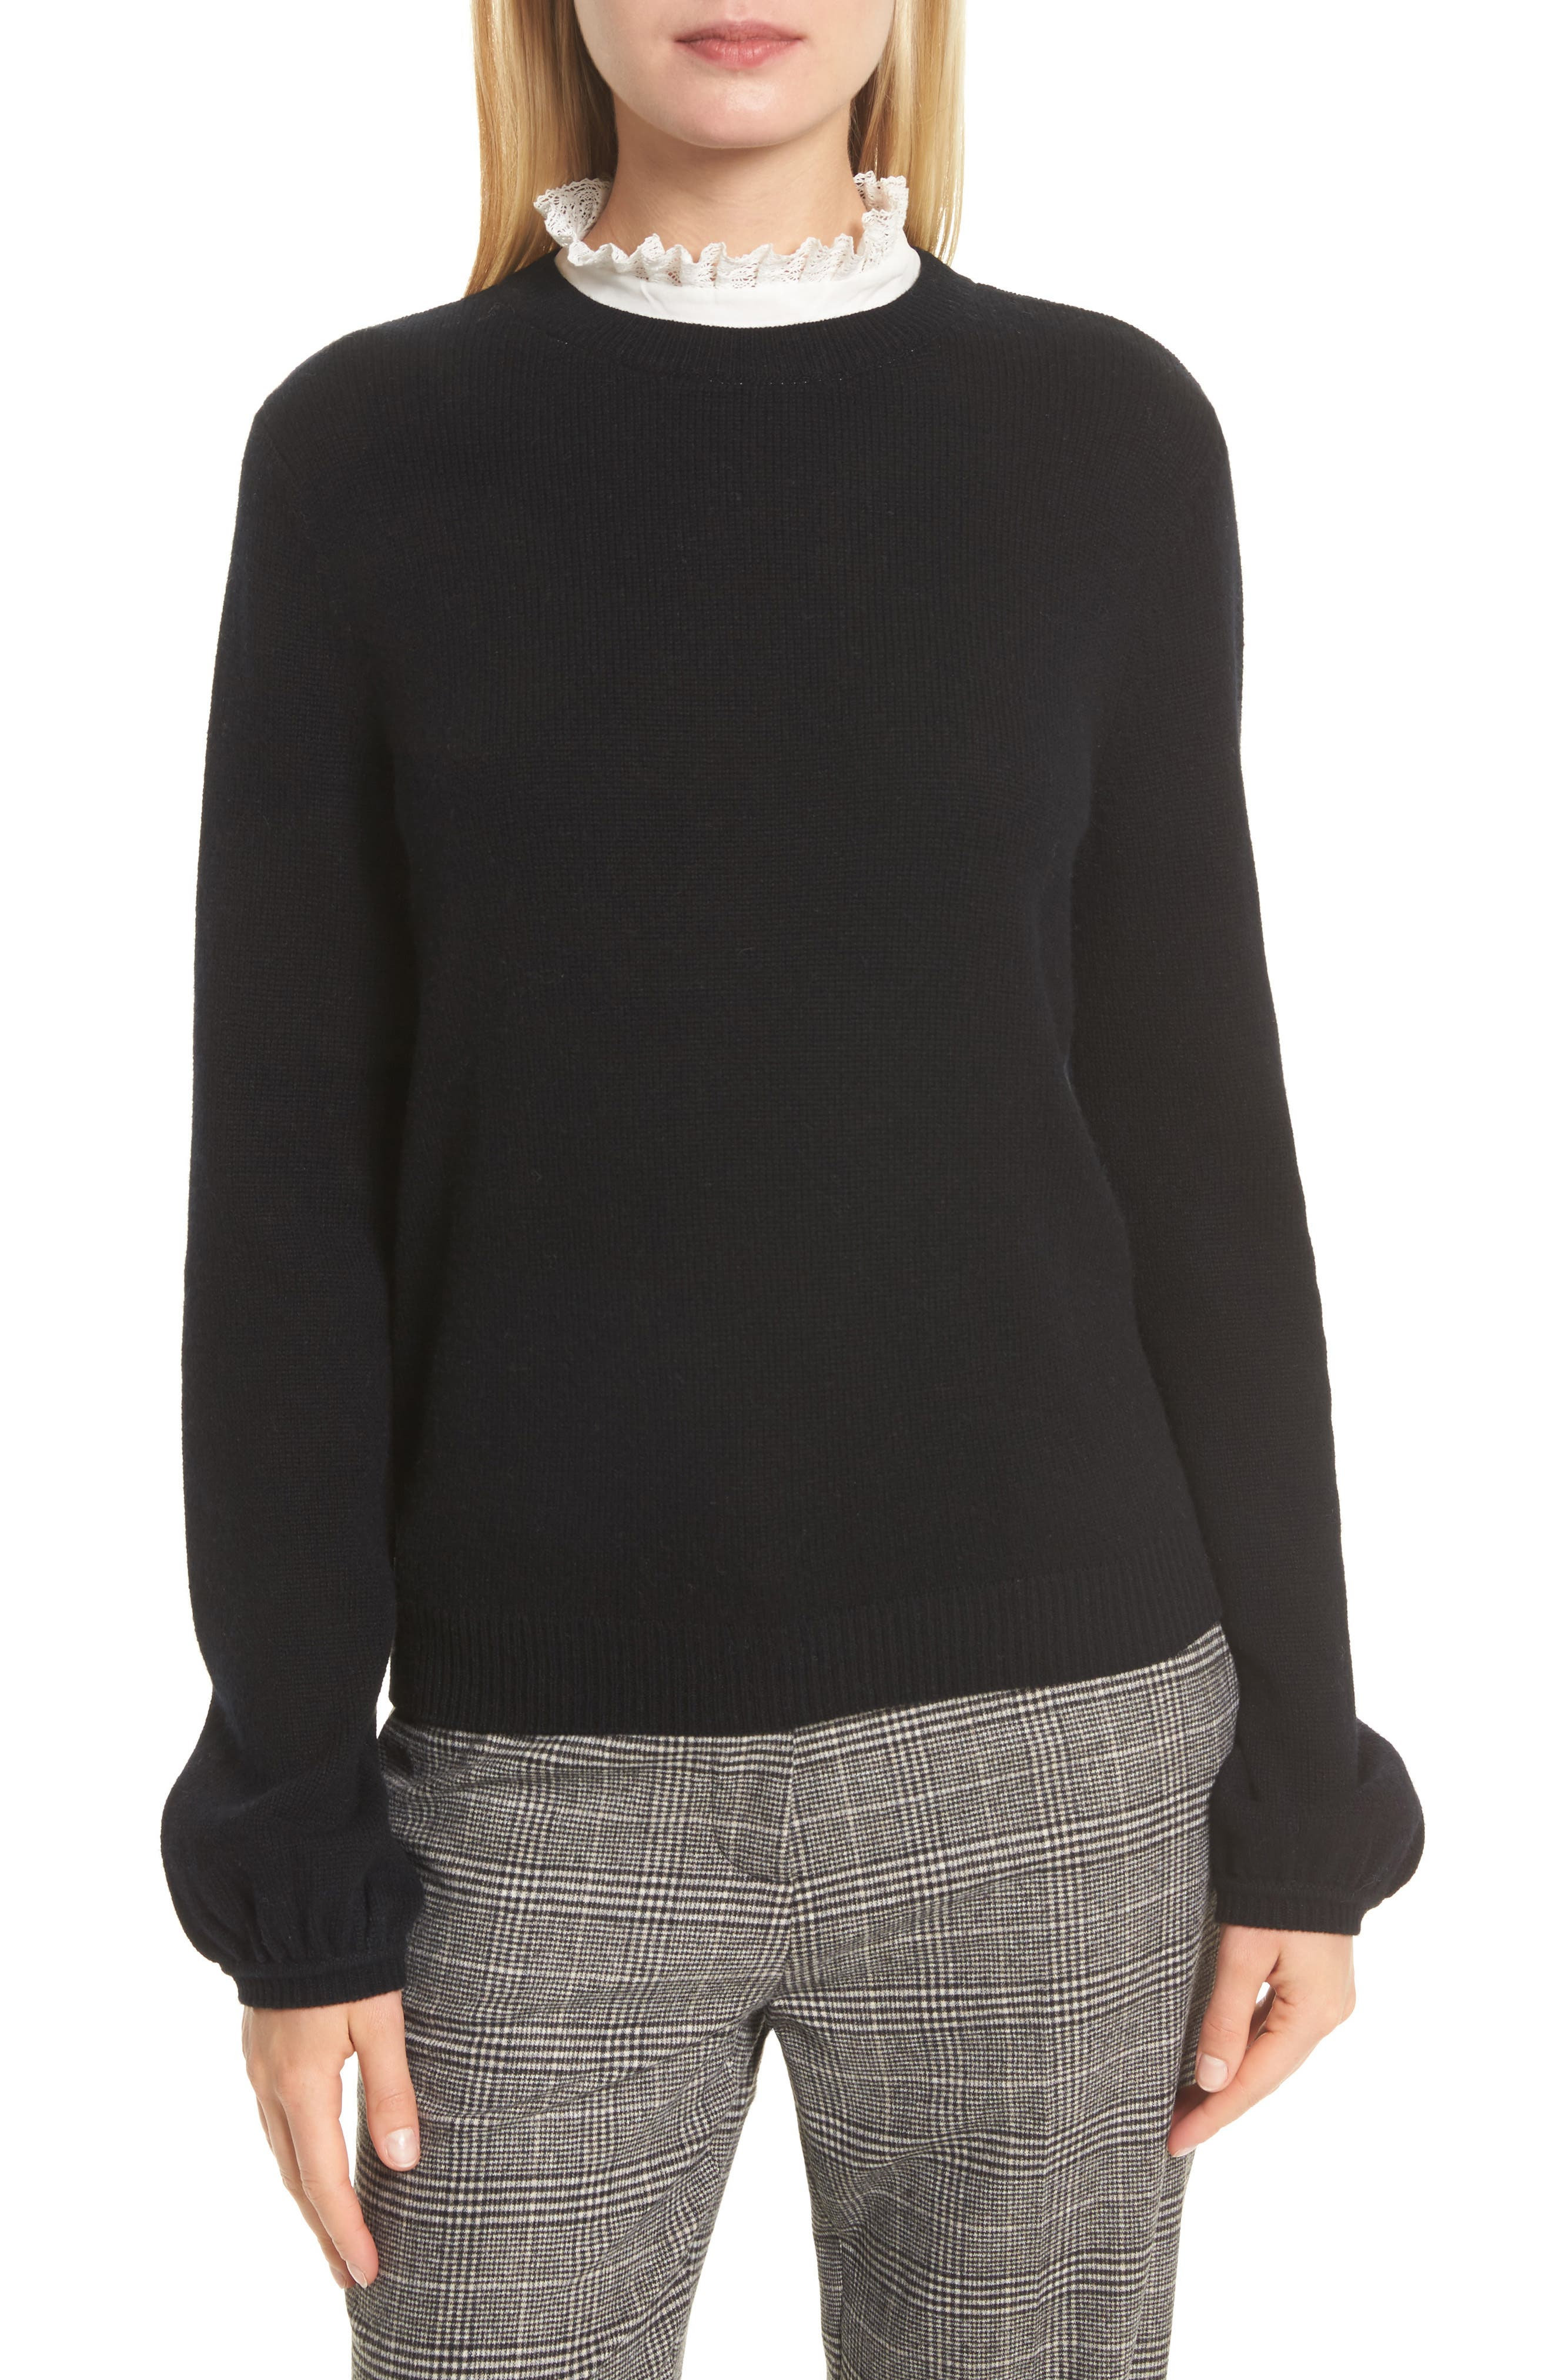 Alternate Image 1 Selected - Joie Affie Wool & Cashmere Sweater